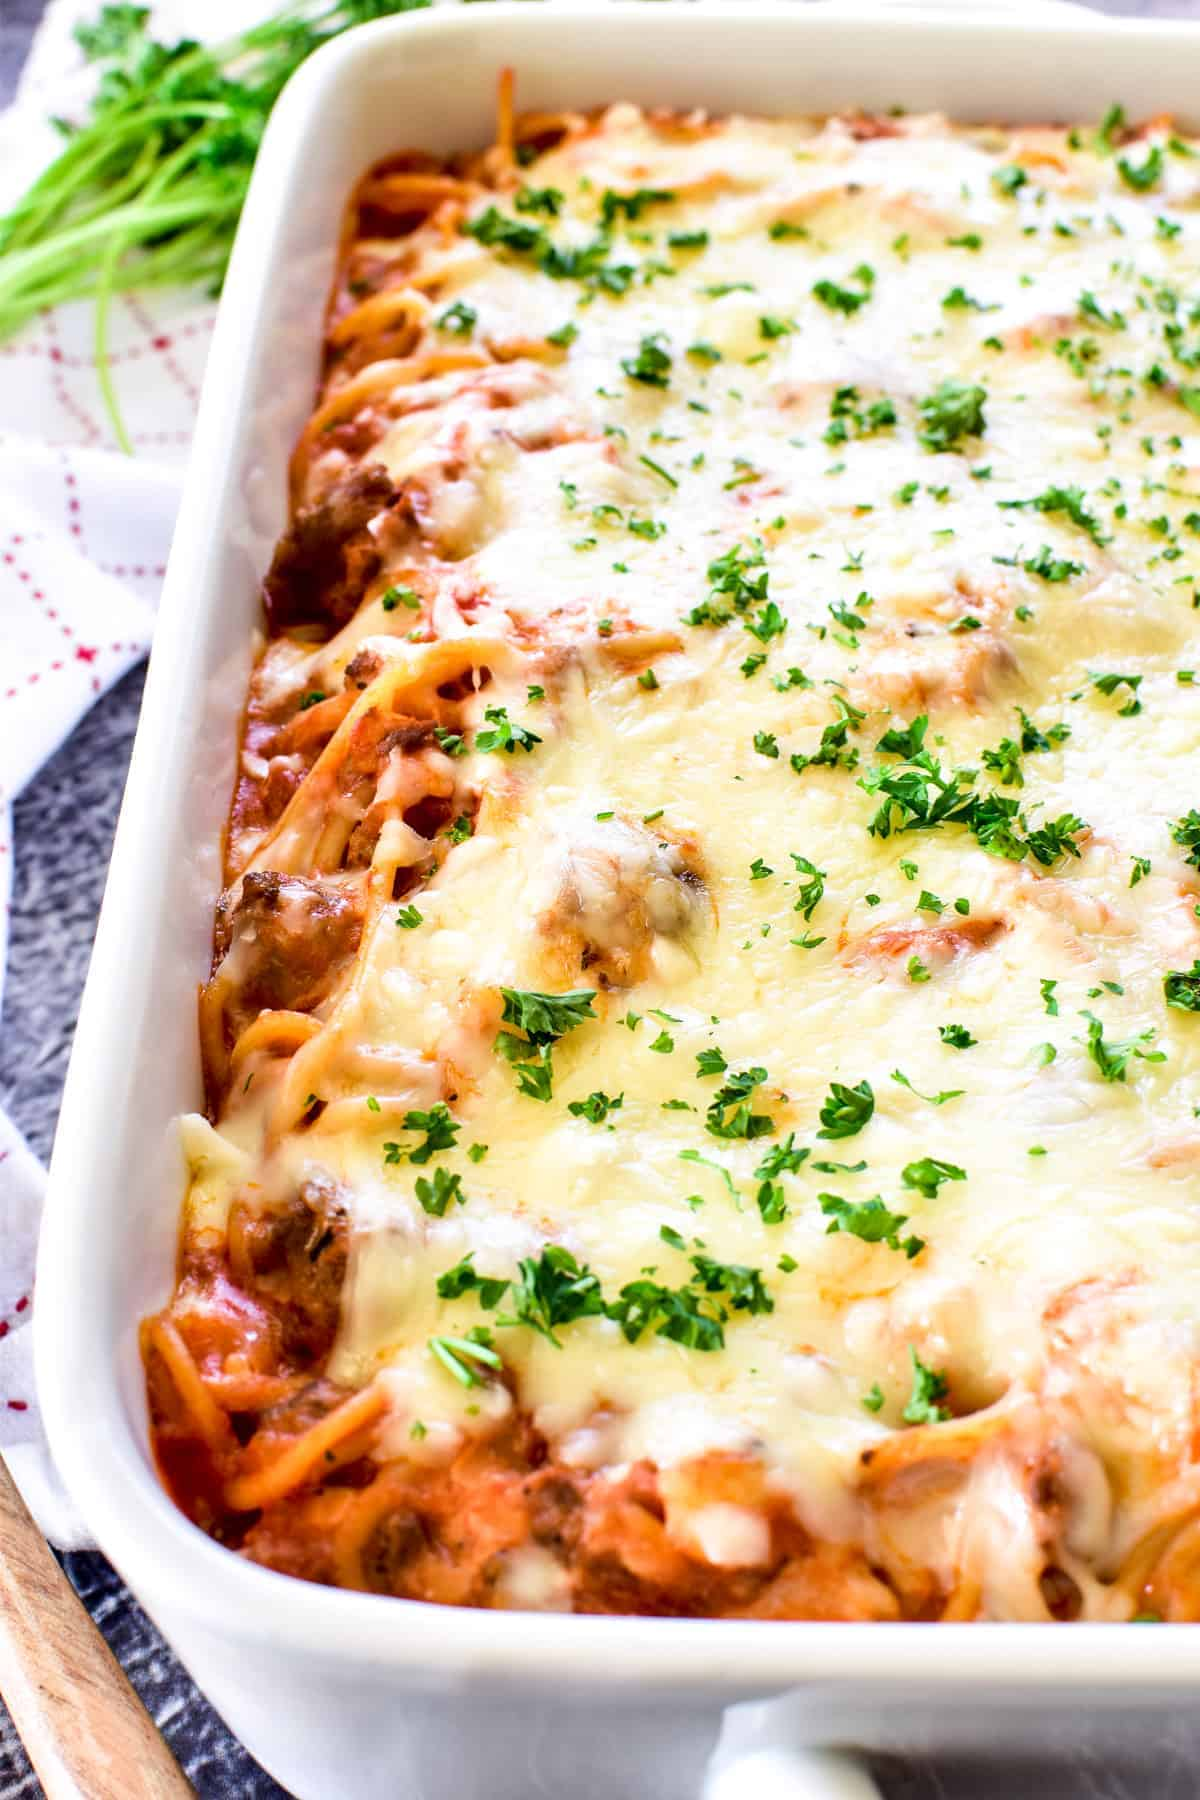 Baked Spaghetti in pan topped with fresh parsley